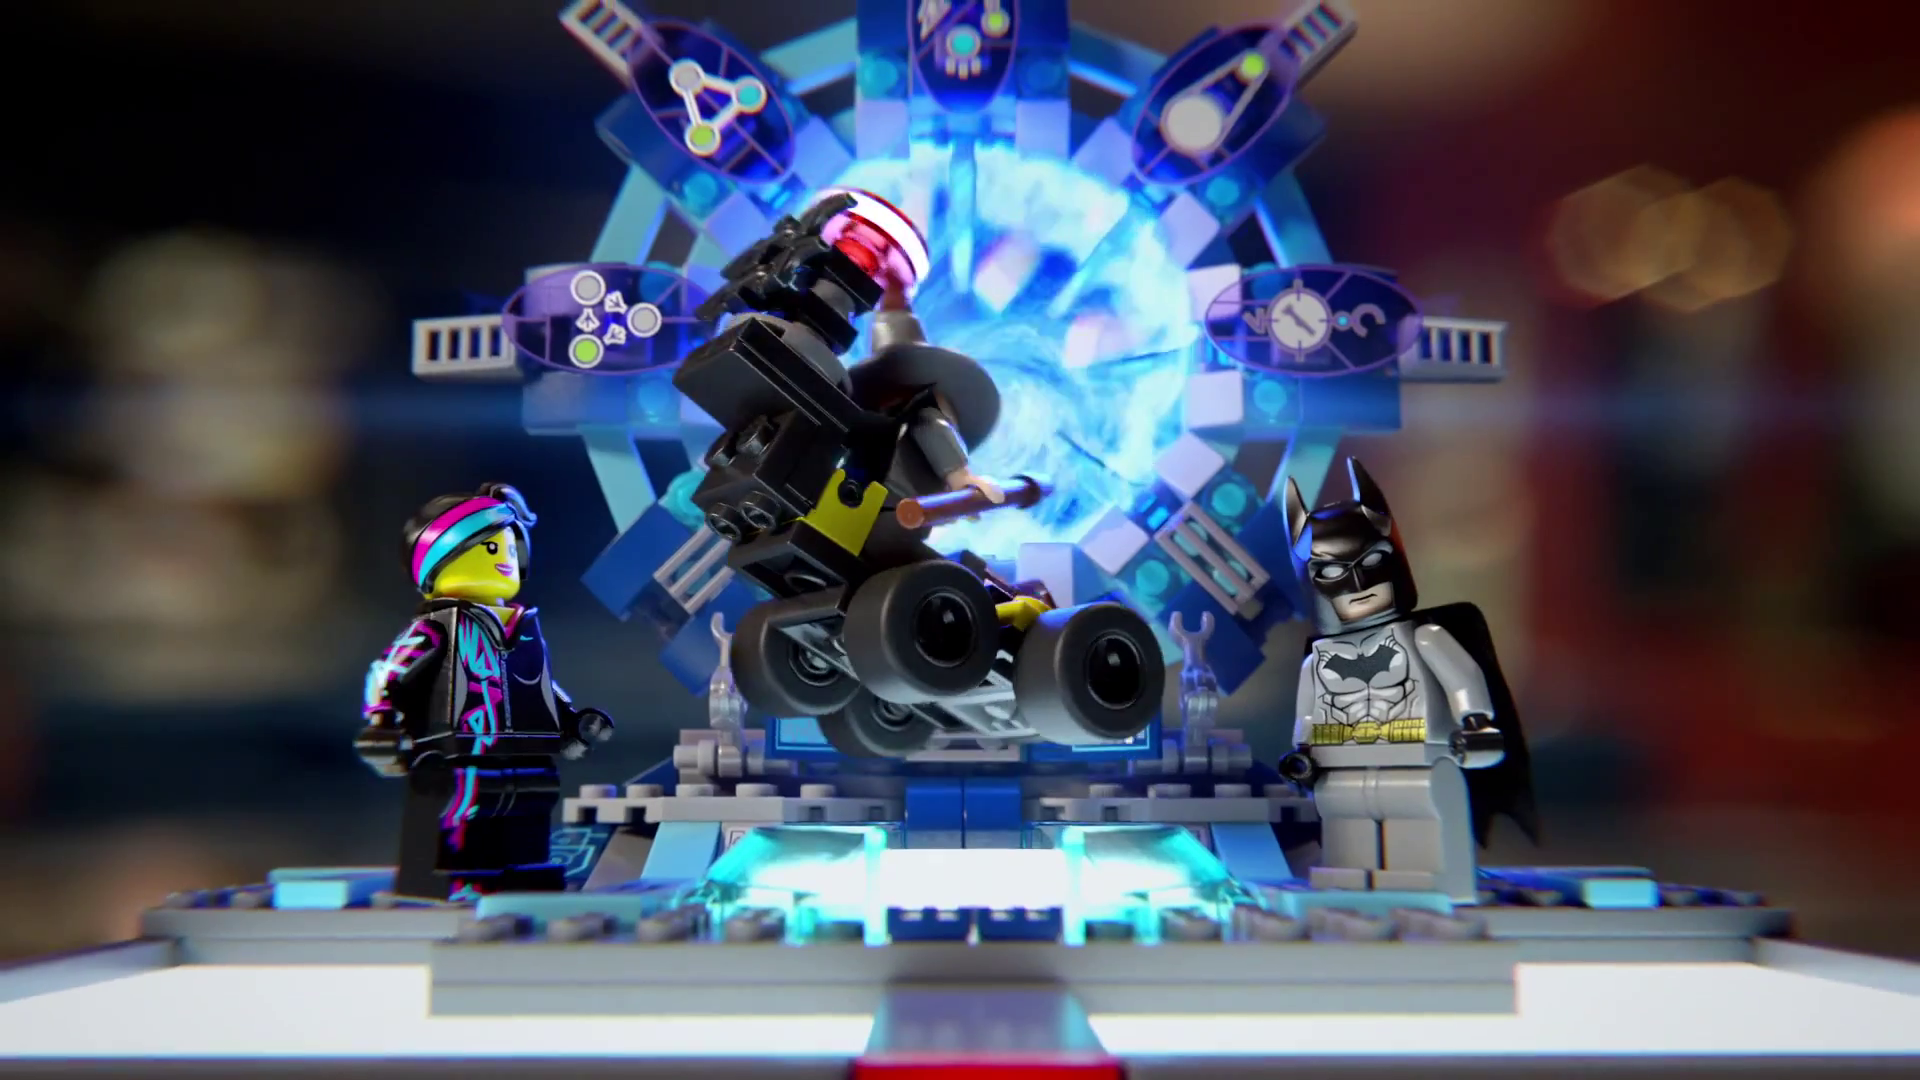 Portal, Doctor Who, The Simpsons and more confirmed for Lego Dimensions